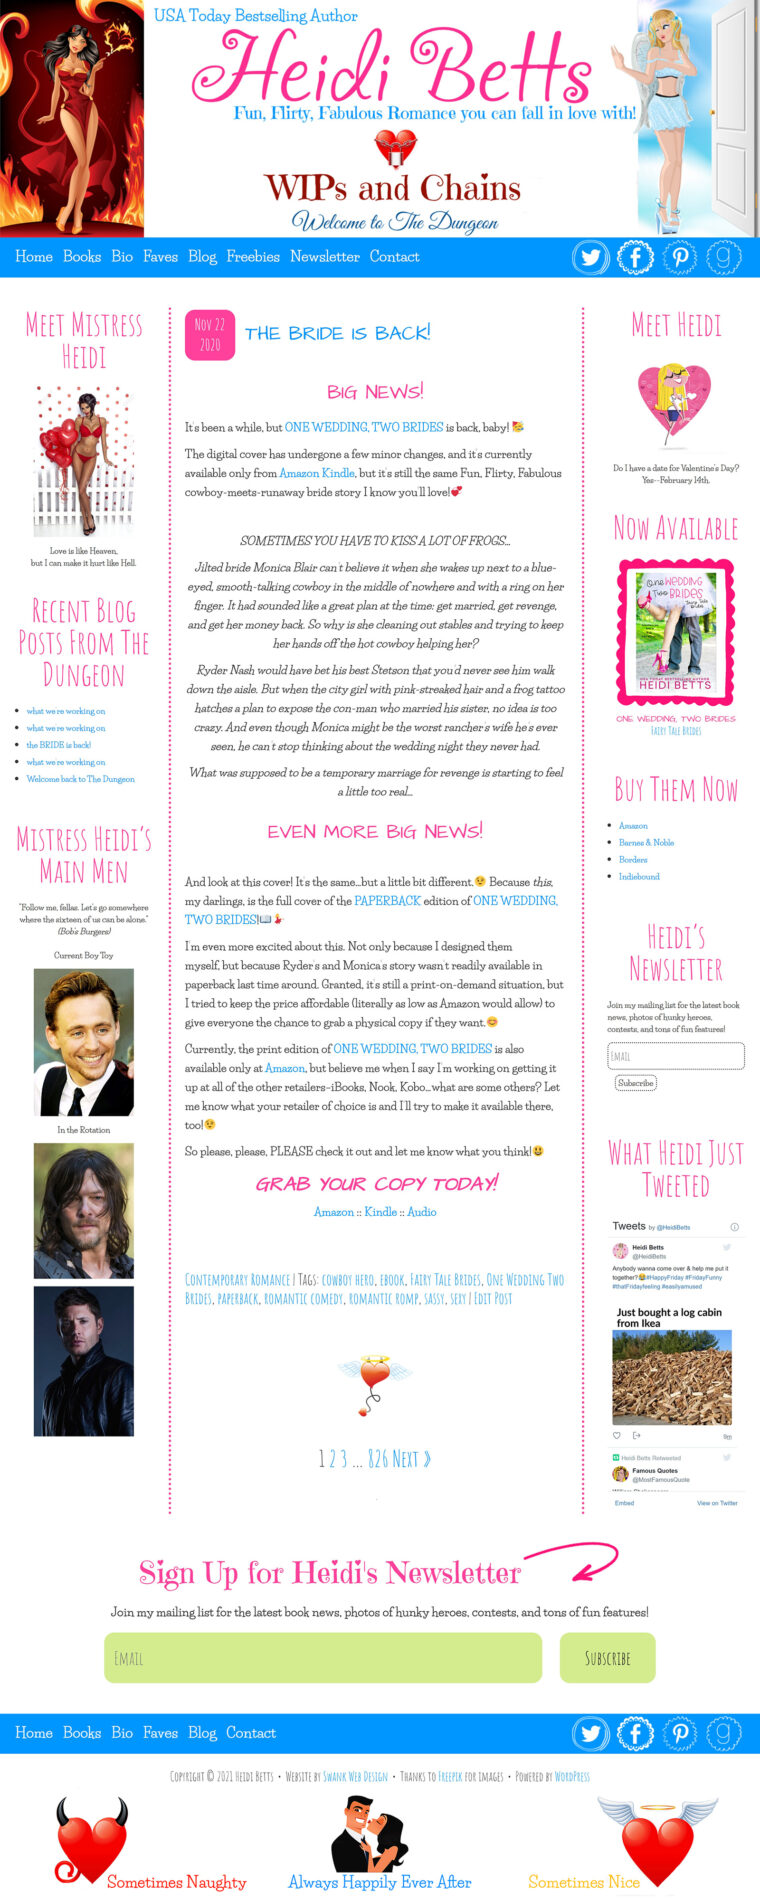 Heidi Betts blog page design